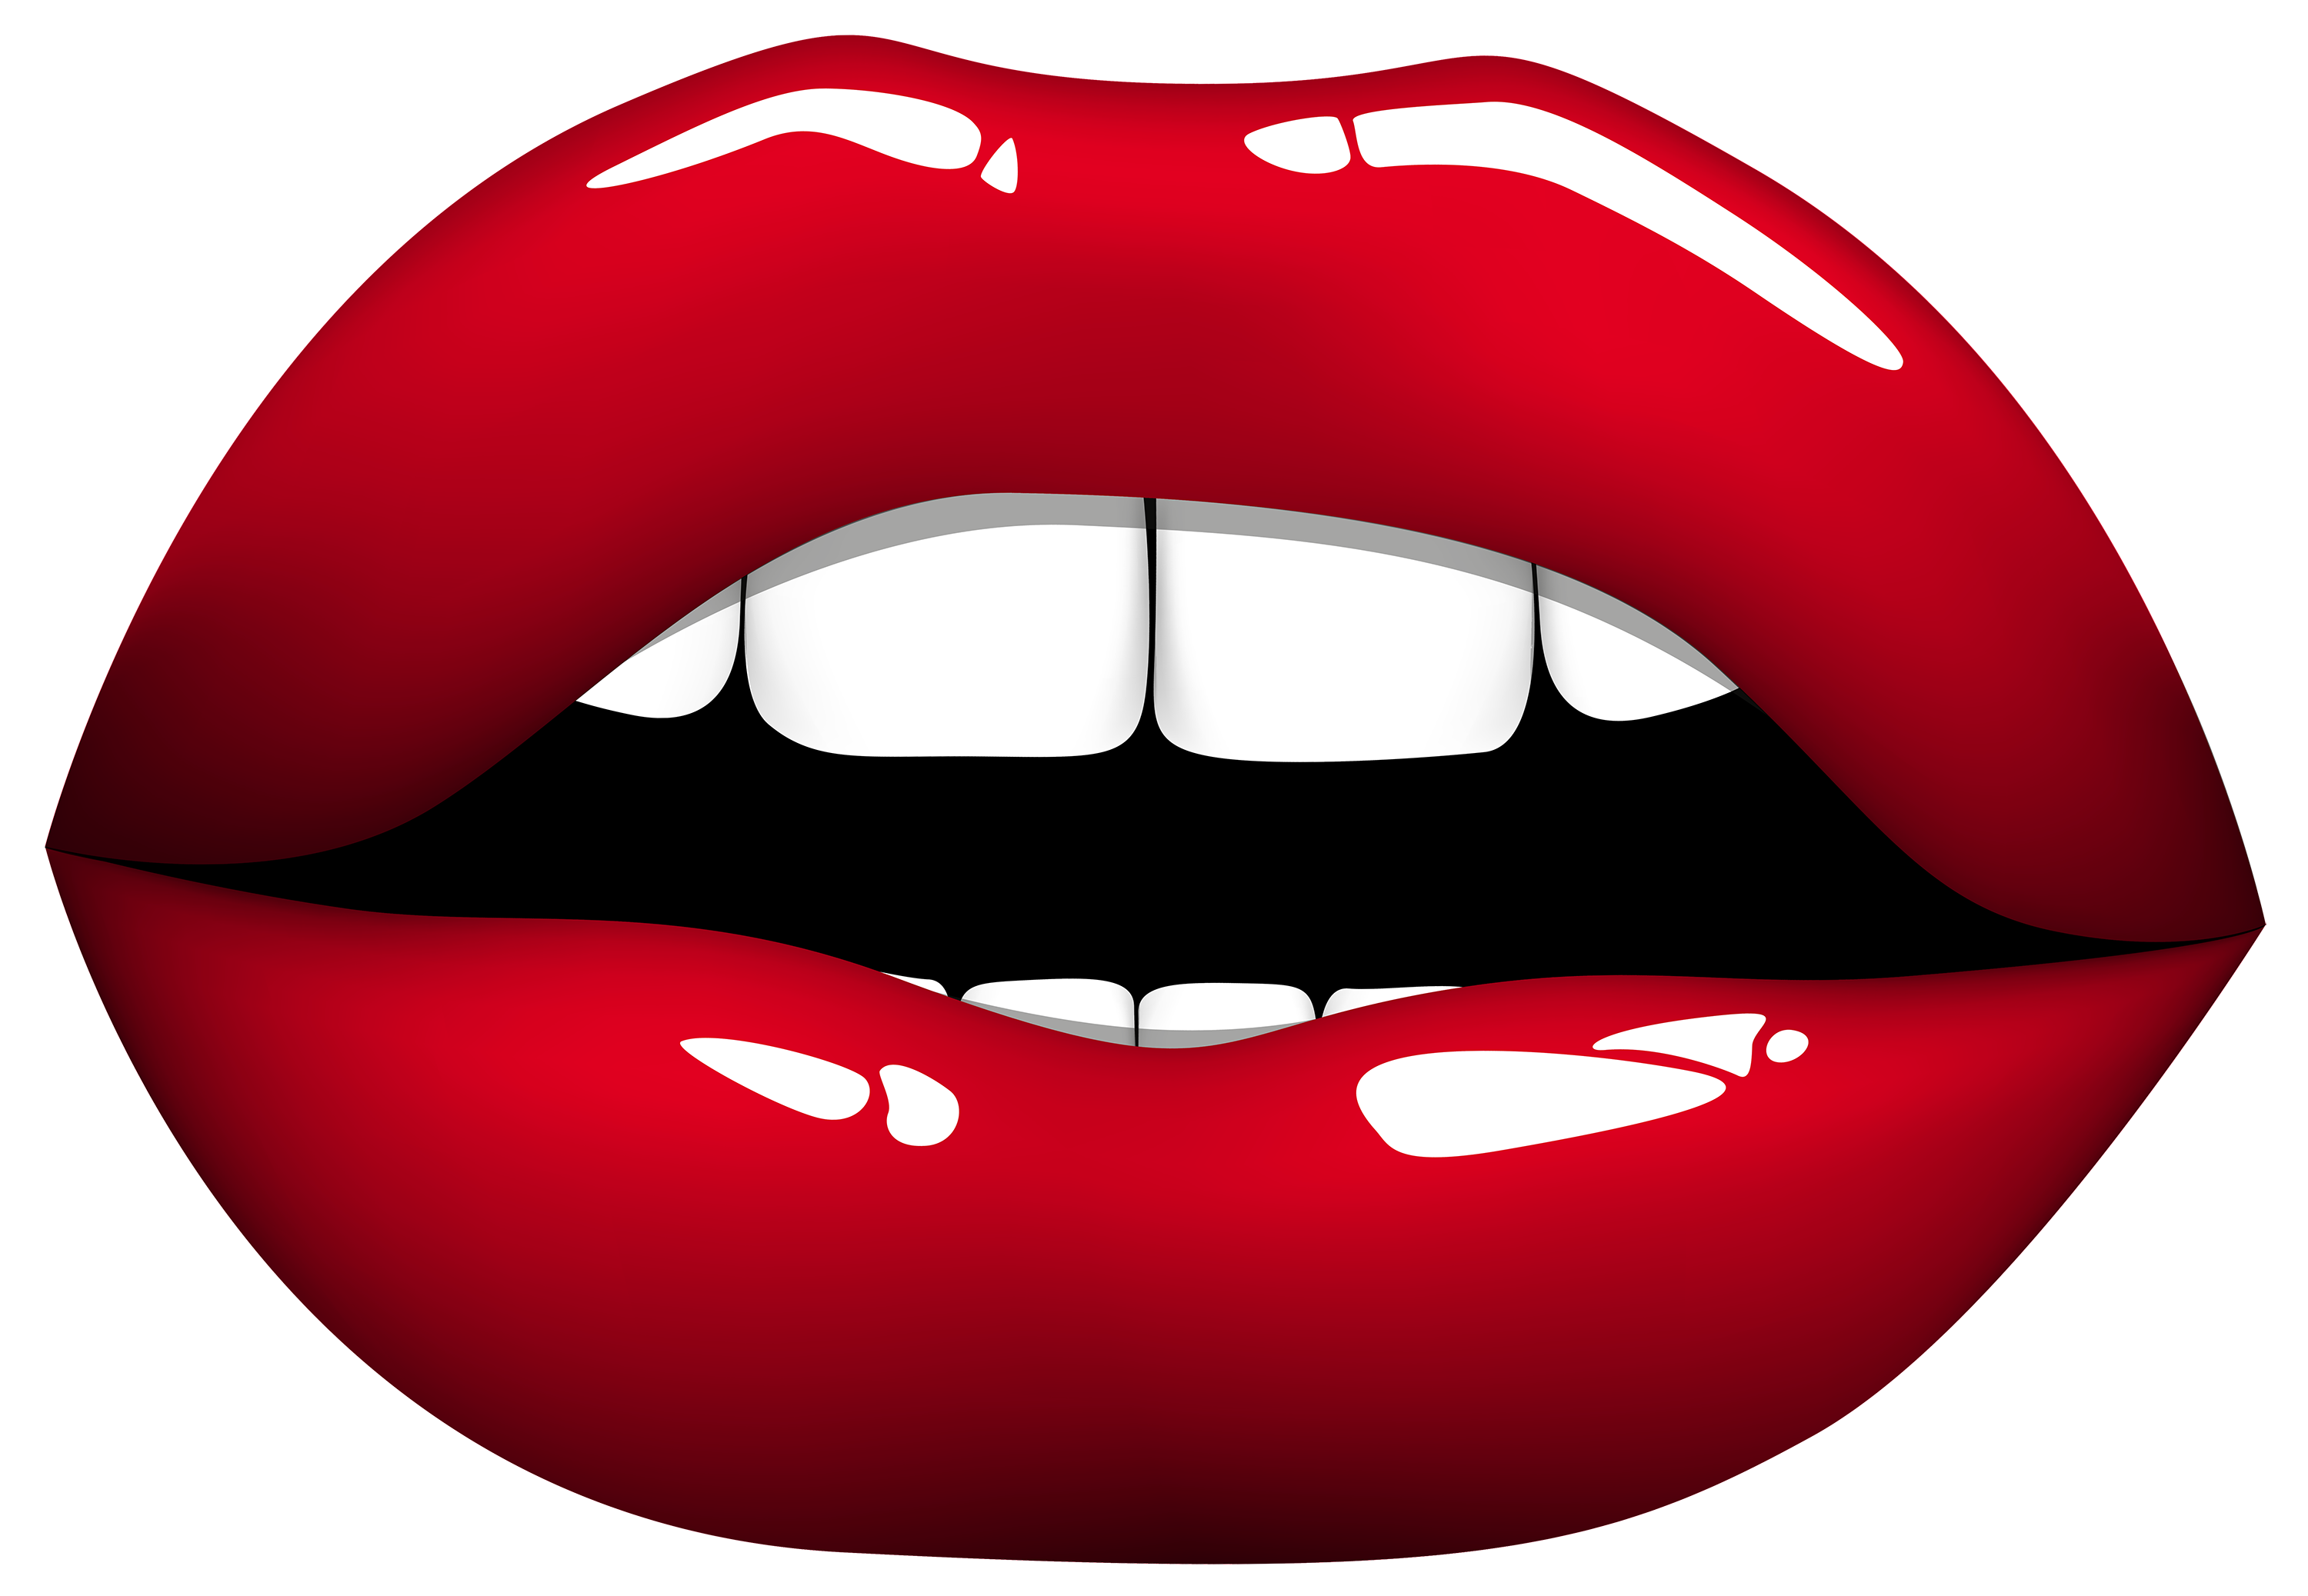 red lips png clipart best web clipart kiss pinterest lips rh pinterest com lip balm clipart lip balm clipart